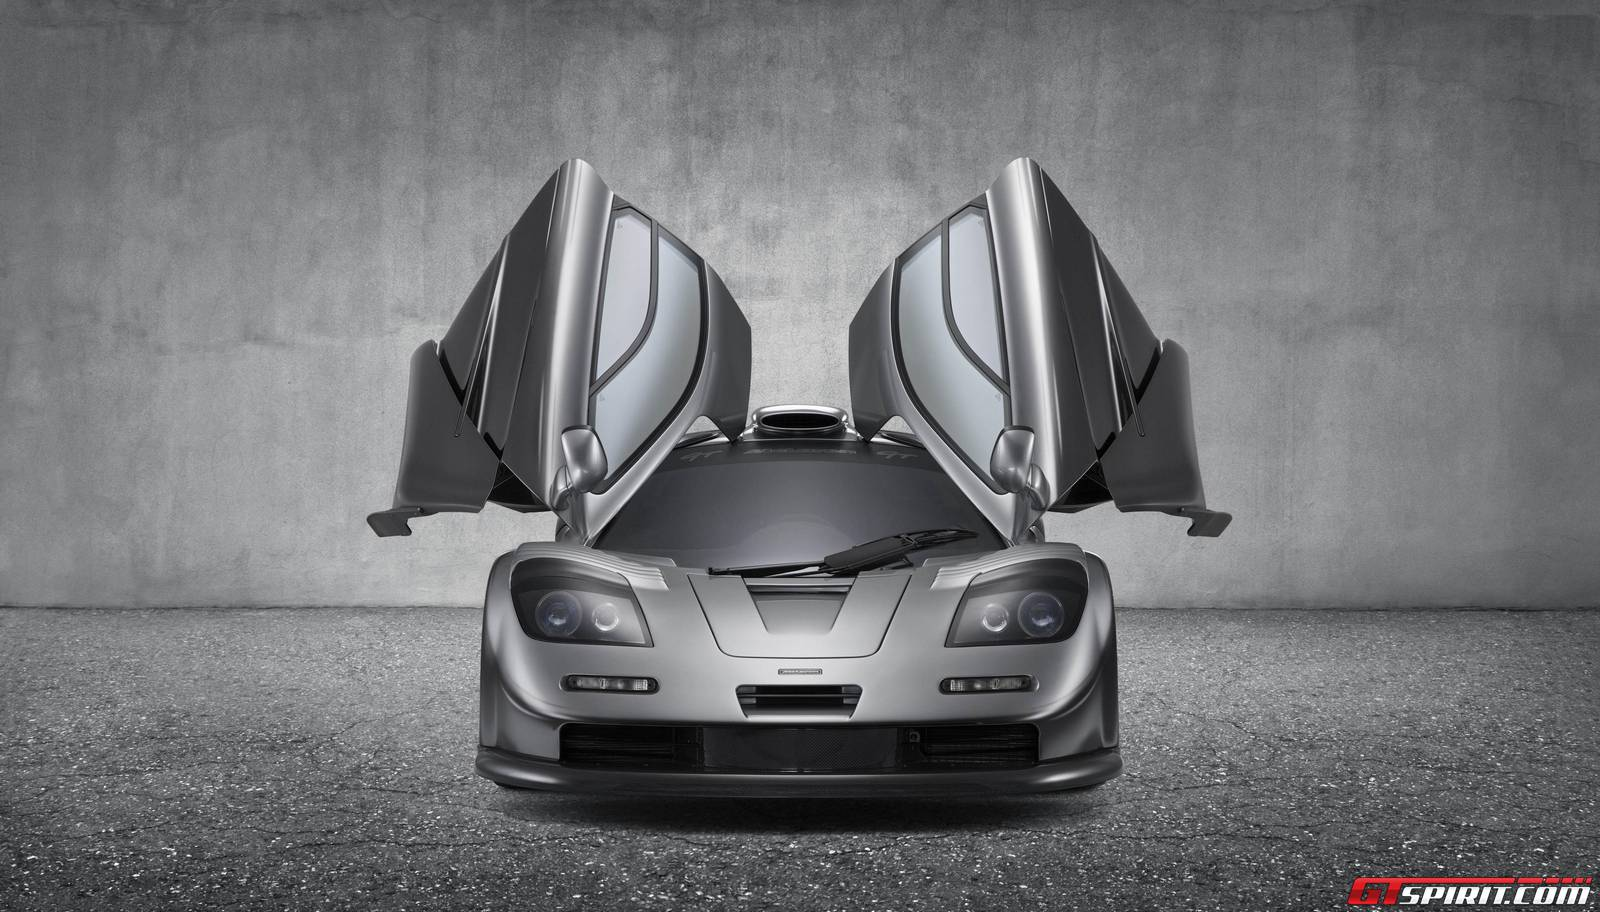 https://storage.googleapis.com/gtspirit/uploads/2015/06/1029373_mclaren_f1_gt_silver_head-on.jpg